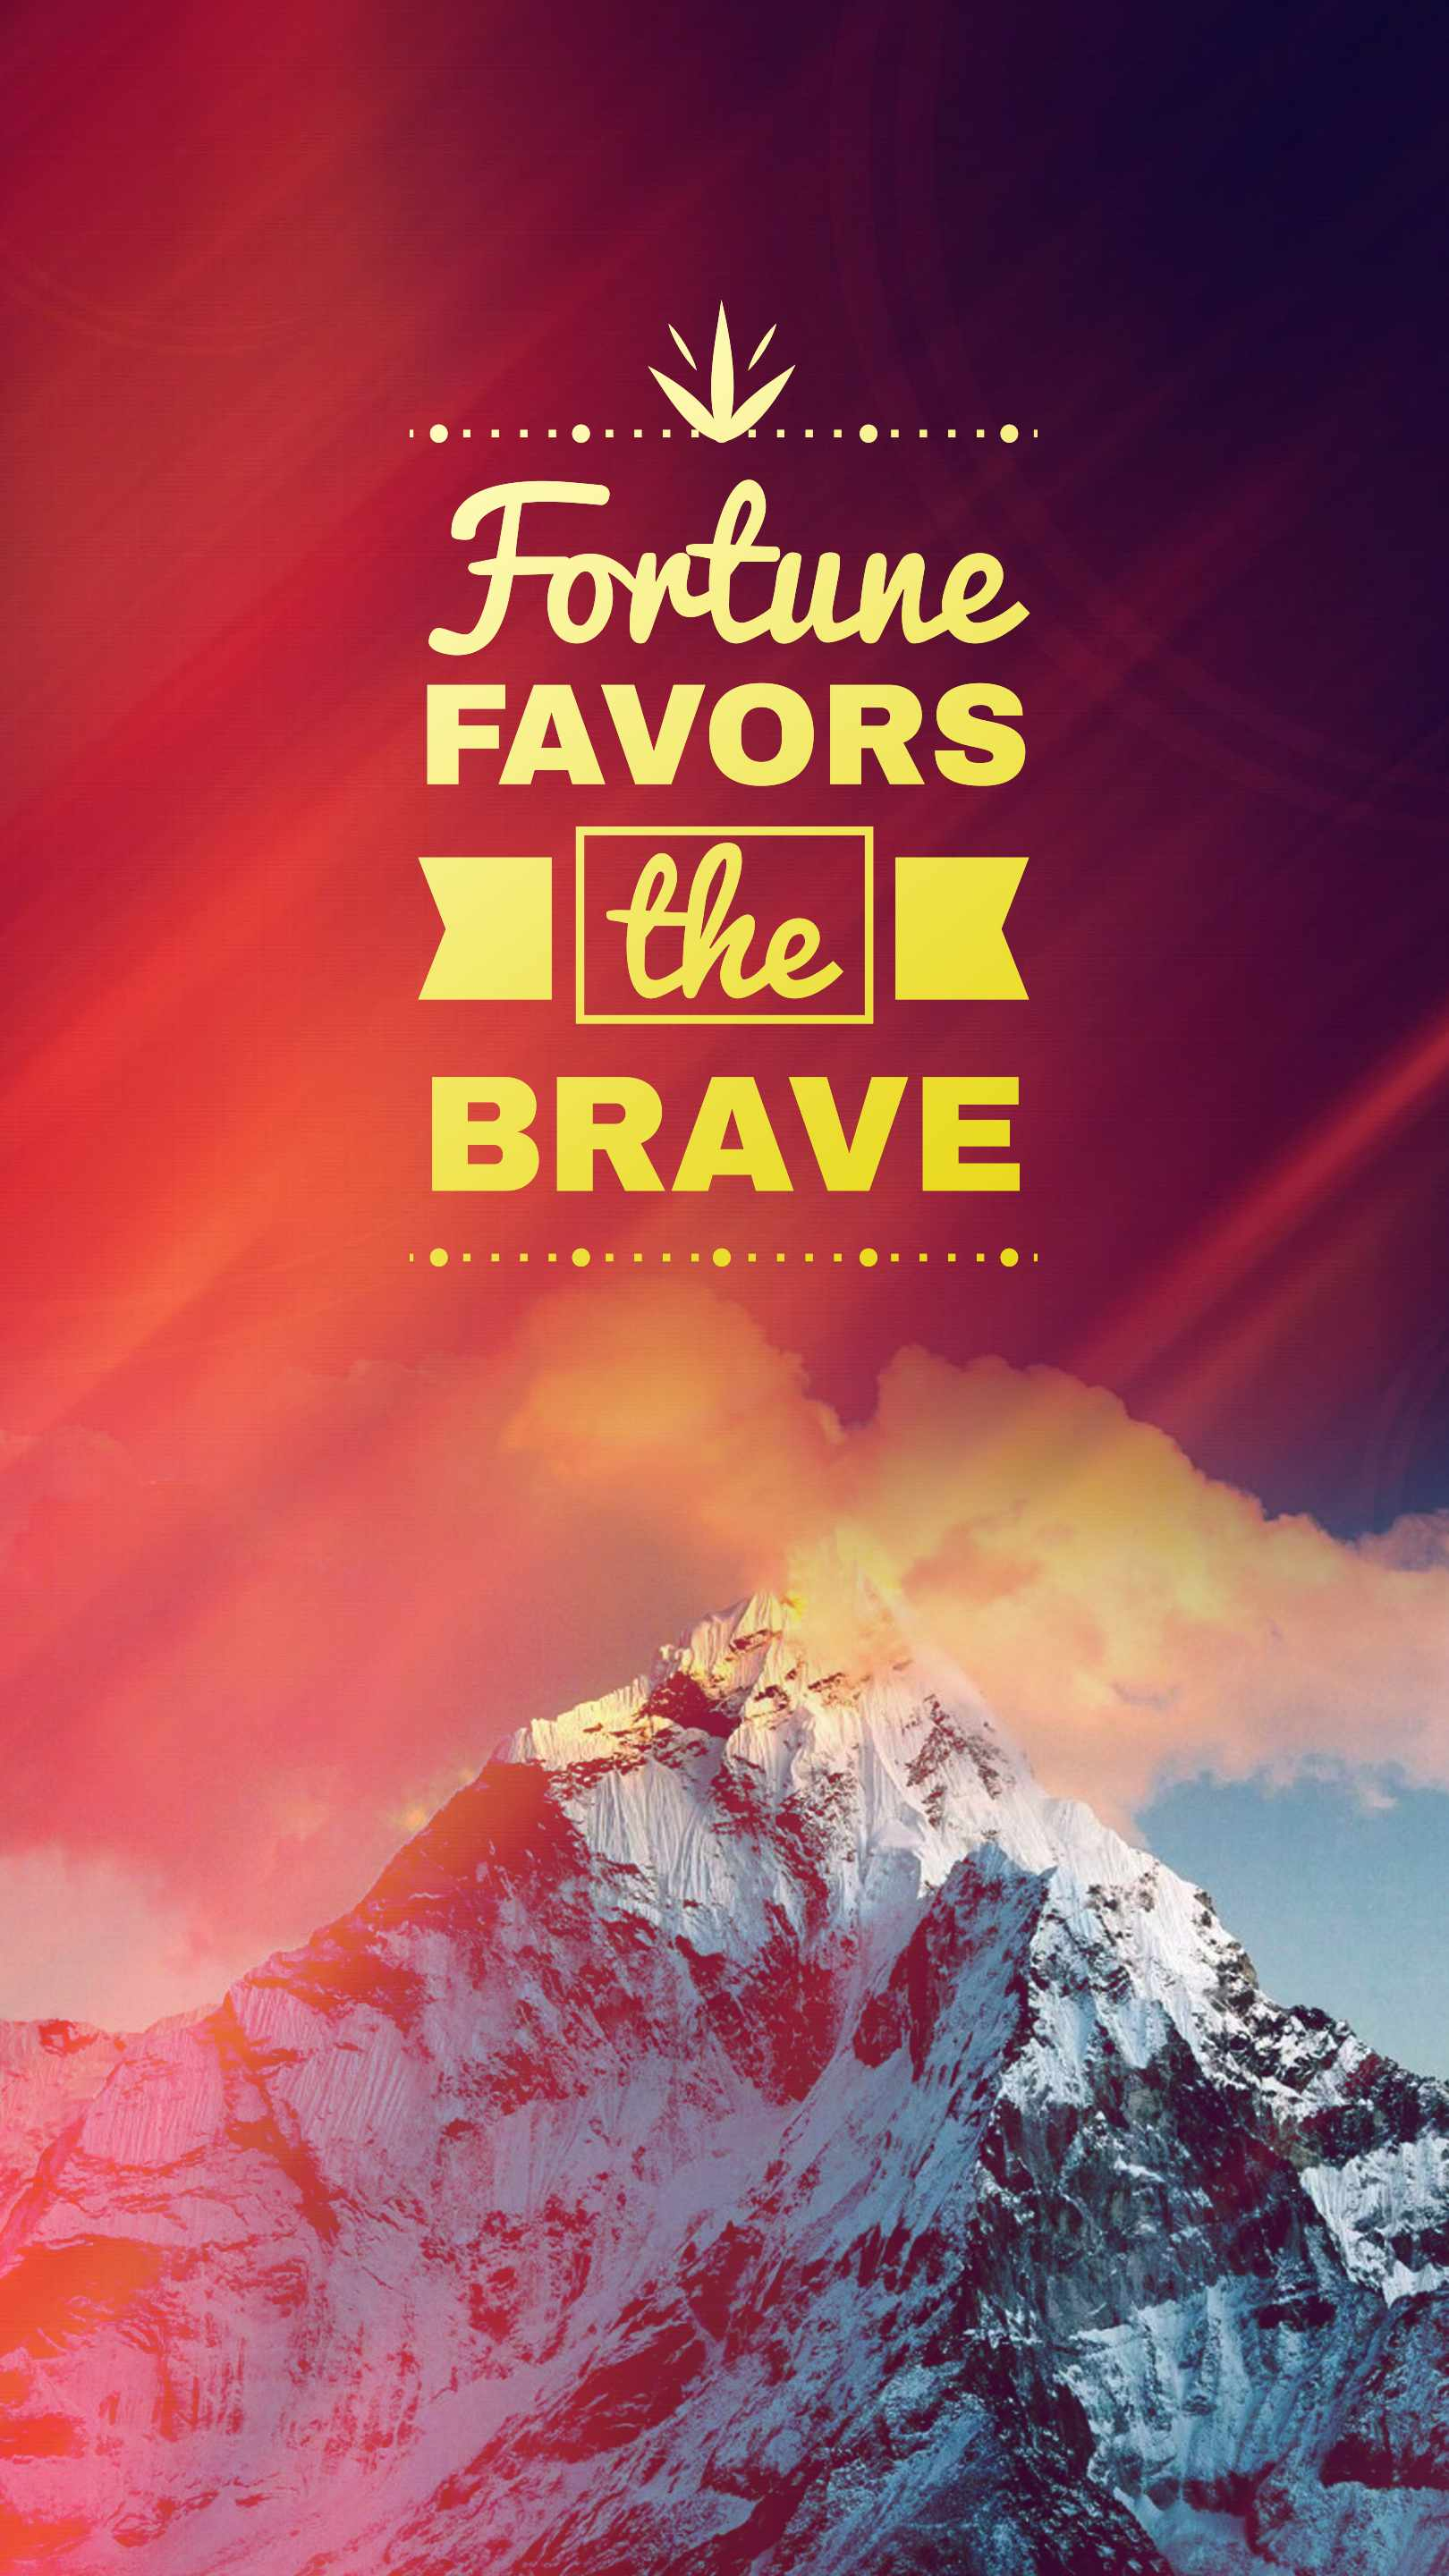 Fortune Favors the Brave iPhone Wallpaper